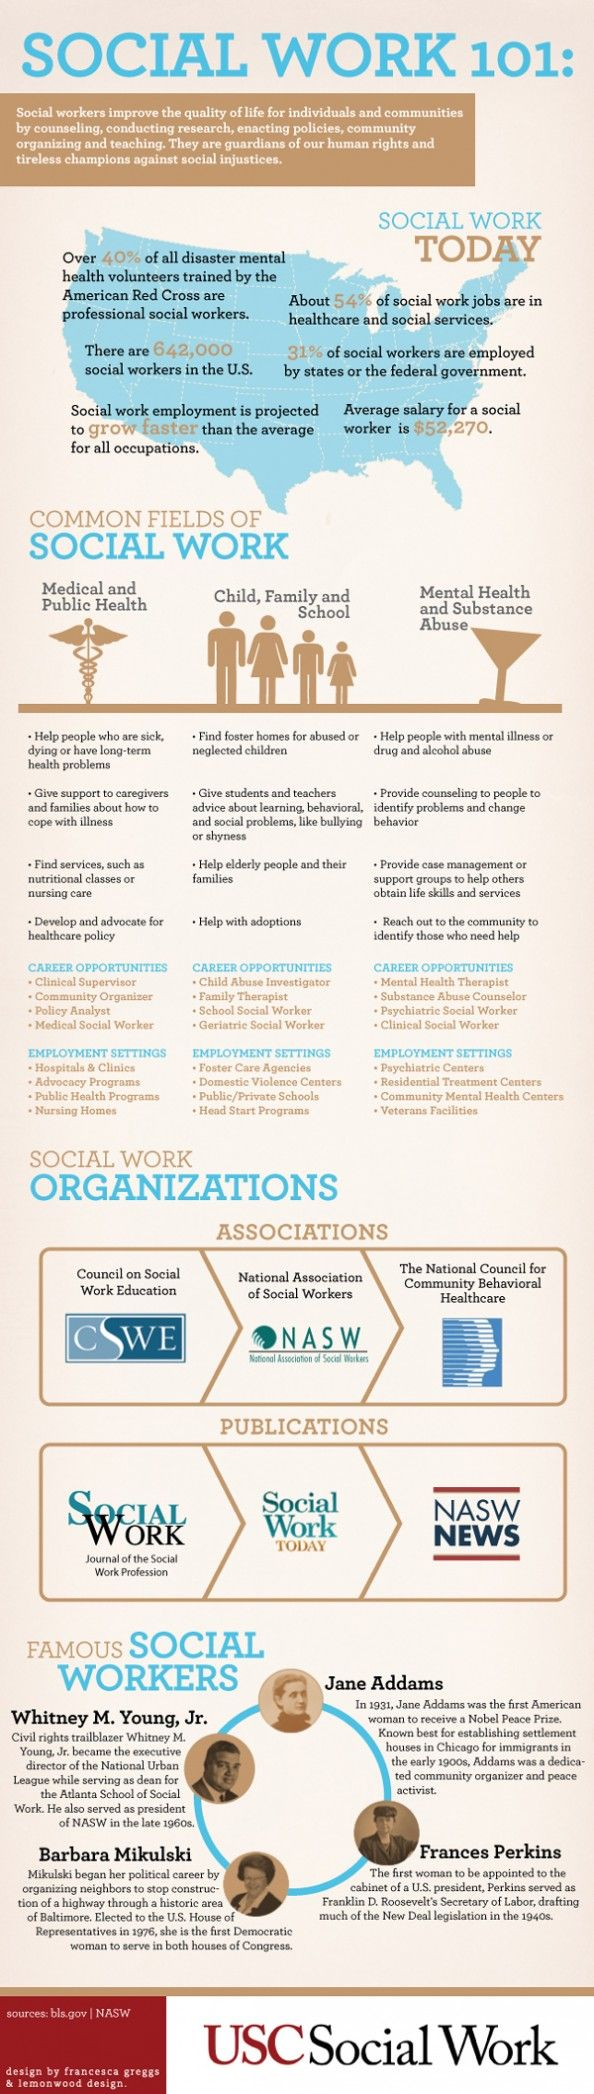 Often times, people don't realize social workers are influential professionals in our local communities and have led some of the most important social movements that have changed the fabric of our culture. Also many misconceptions persist about what social workers do and their role in many workplaces.